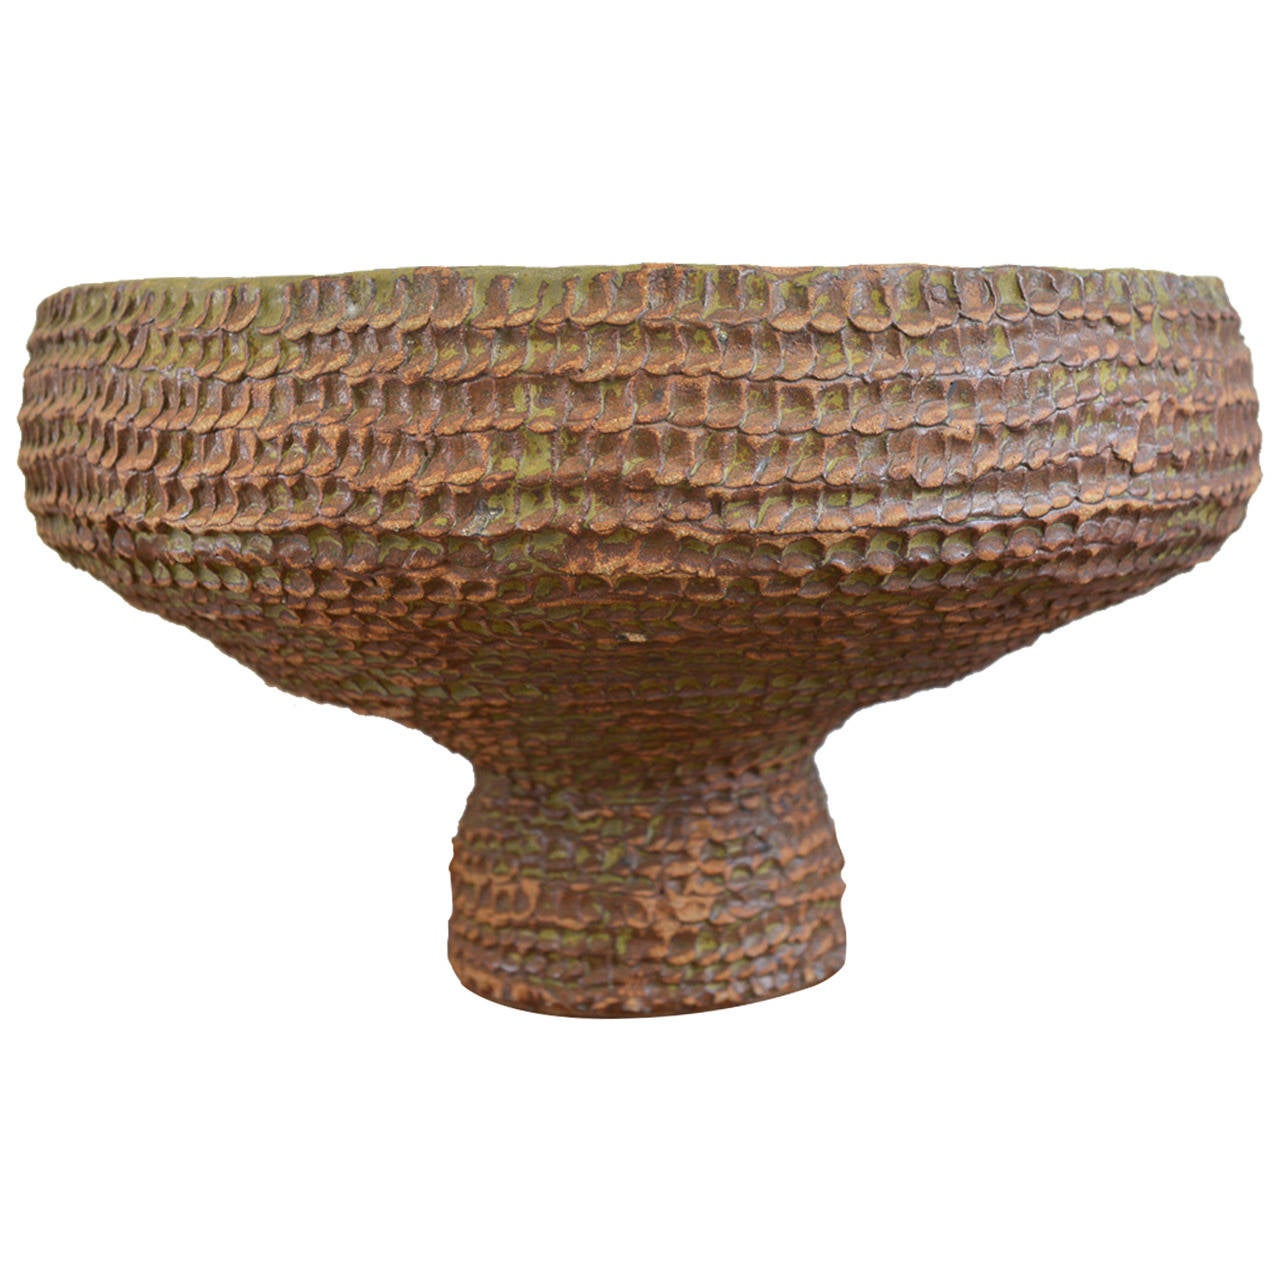 Fantastic Substantial Mary Alice Mcfadden Thumbprint Vessel At 1Stdibs Pdpeps Interior Chair Design Pdpepsorg